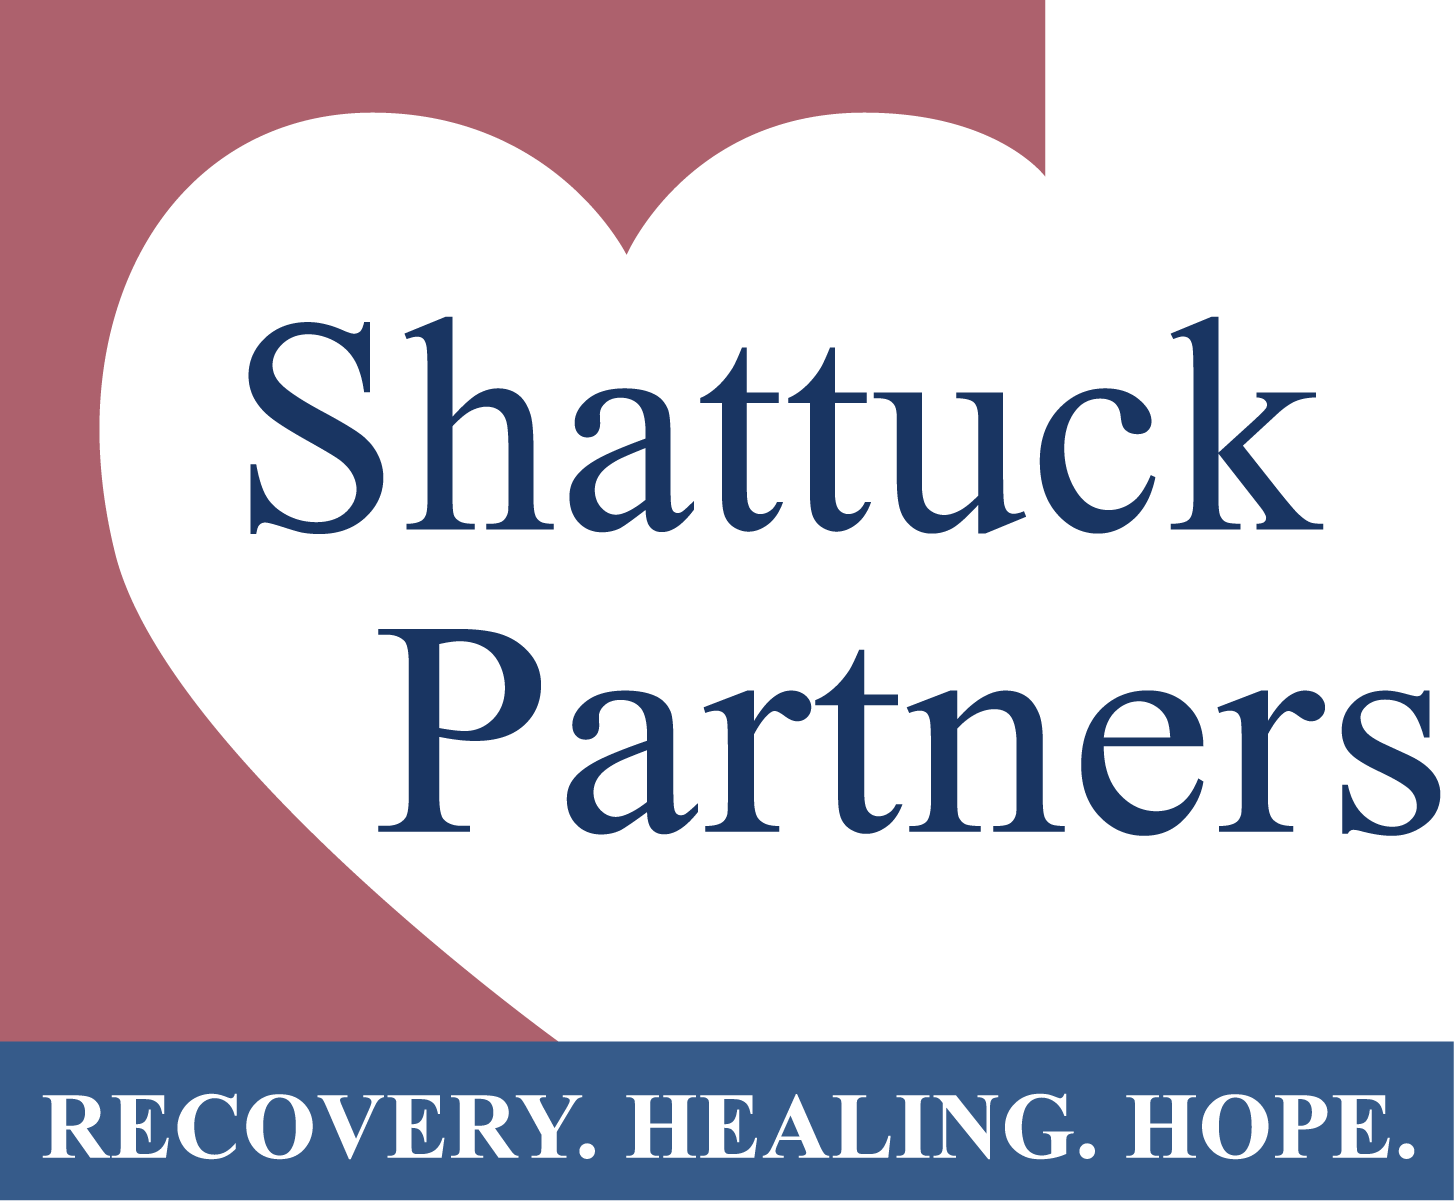 Join Shattuck Partners on this journey of recovery, healing and hope. image